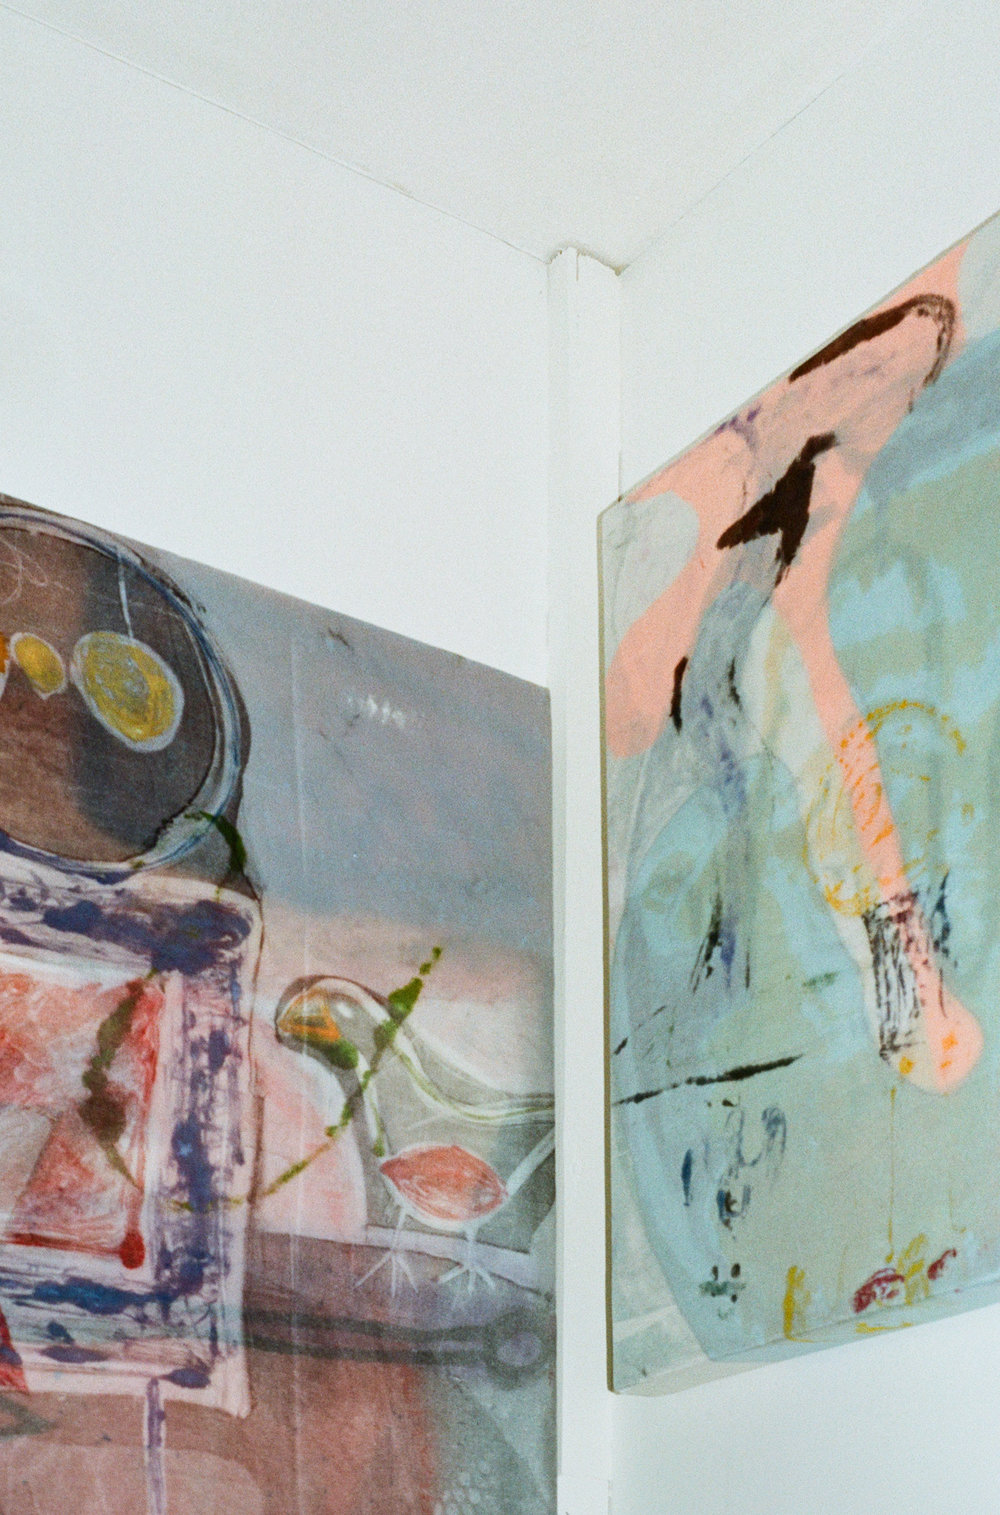 alice irwin, studio visit by dateagleart. photography by carla benzing